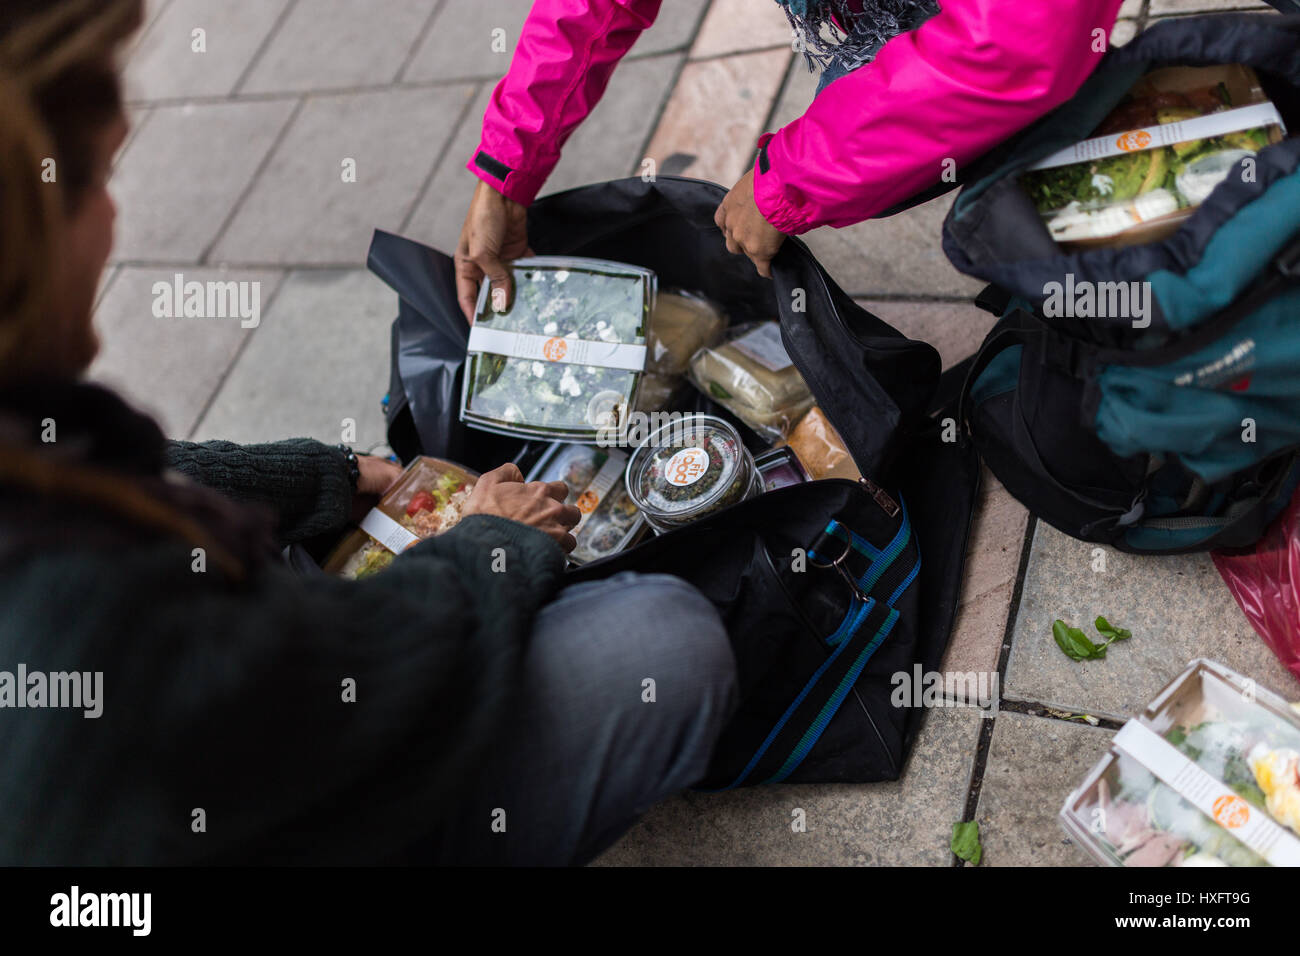 'Skipping' (collecting free food) by London-squatters - Stock Image